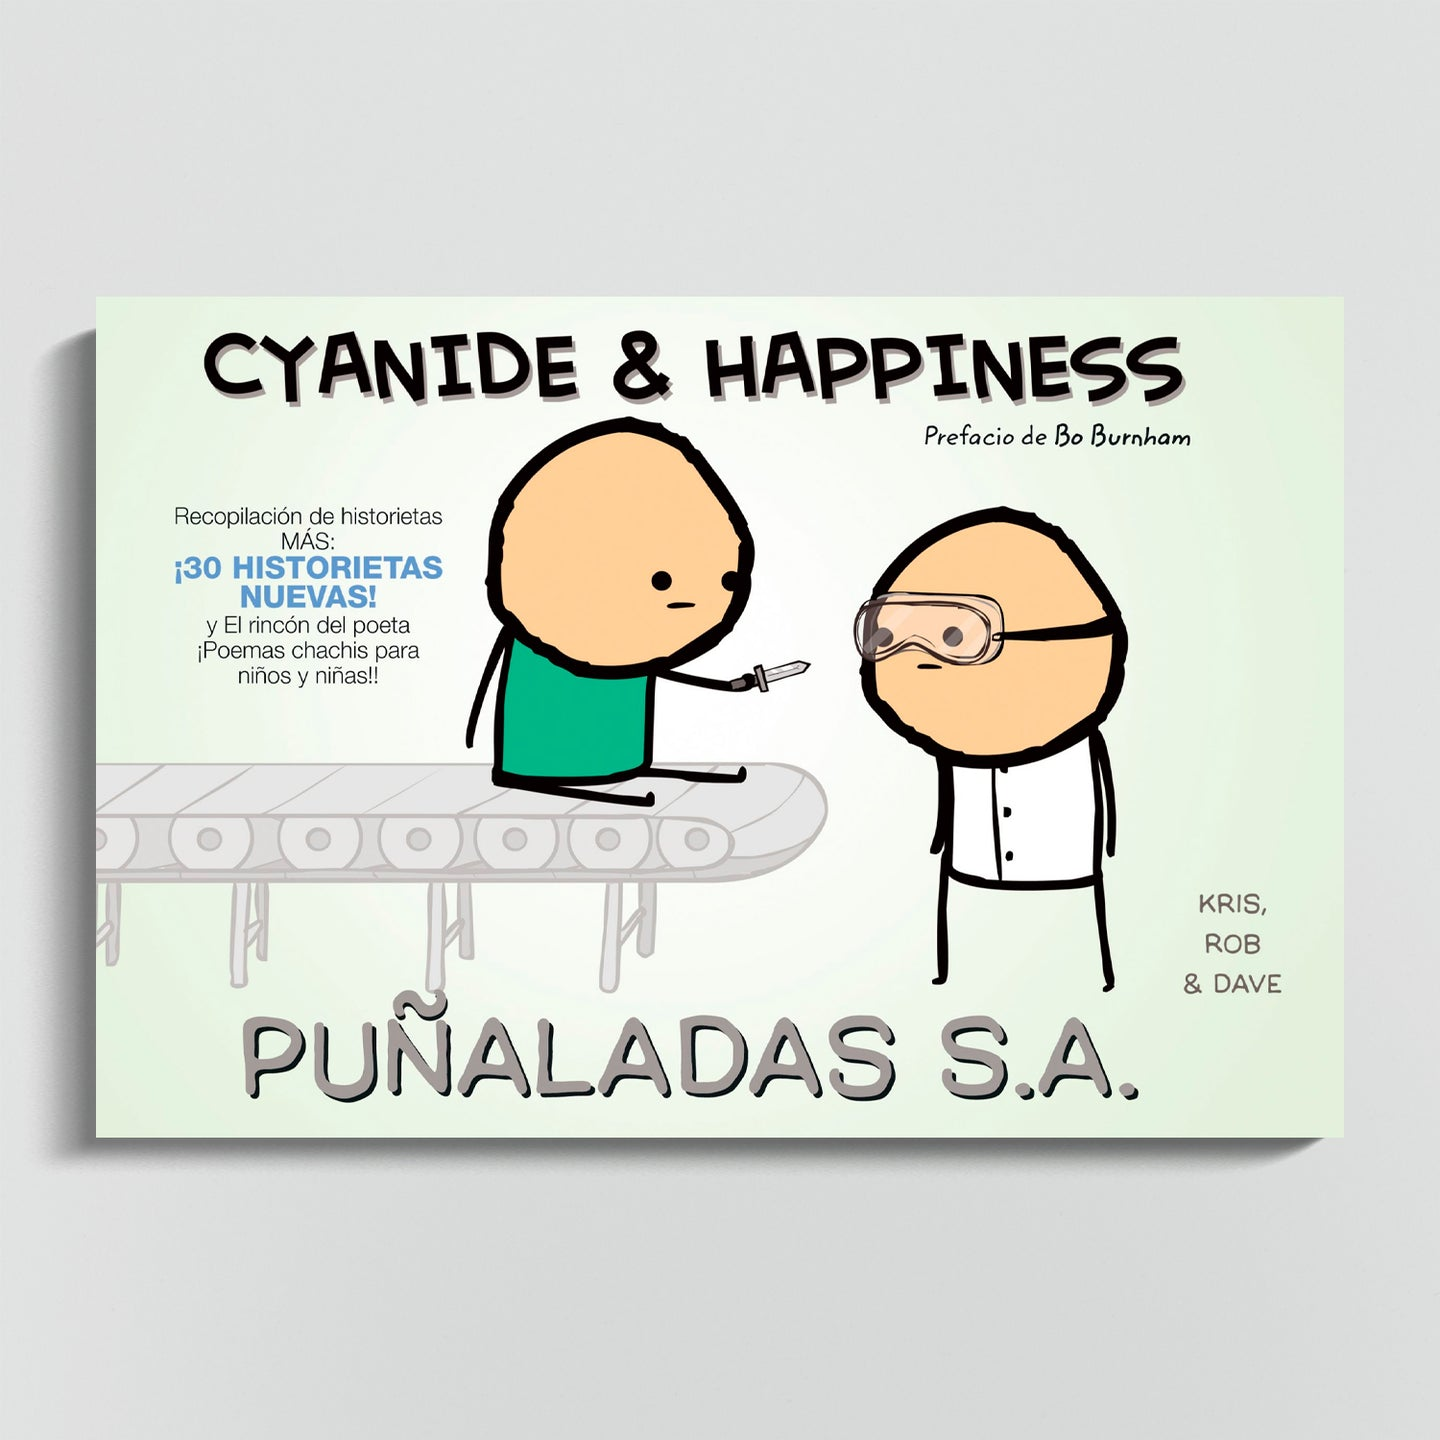 CYANIDE & HAPPINESS | Cyanide & Happines: Puñaladas S.A.